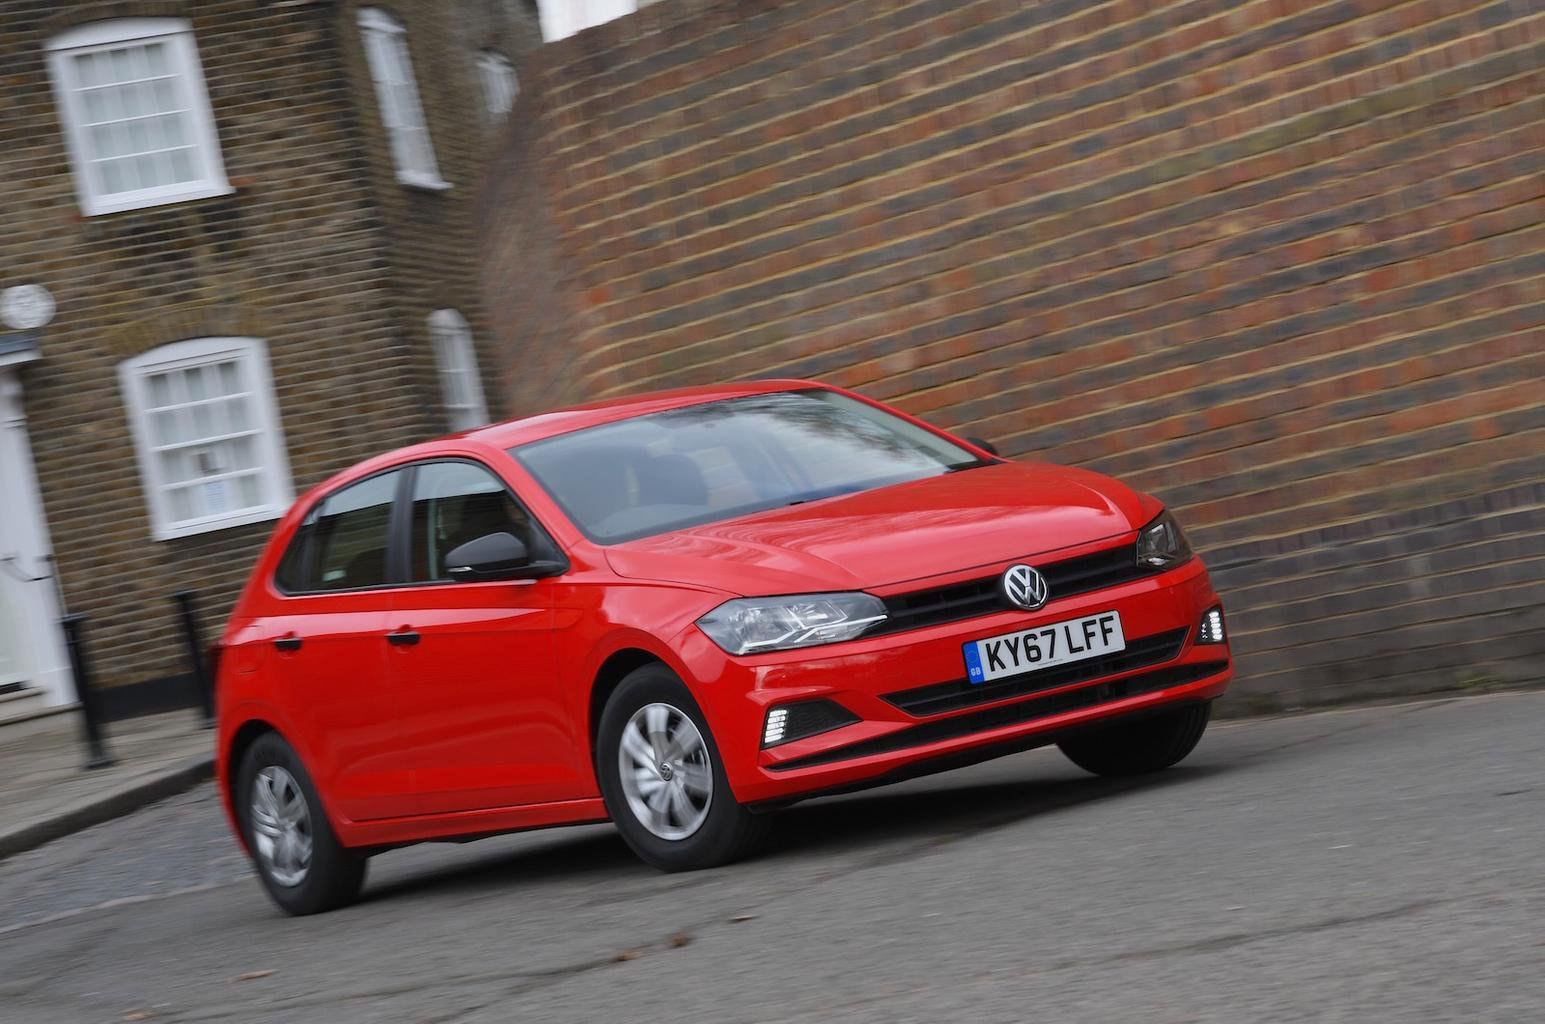 2018 Volkswagen Polo 1.0 65 S review - verdict